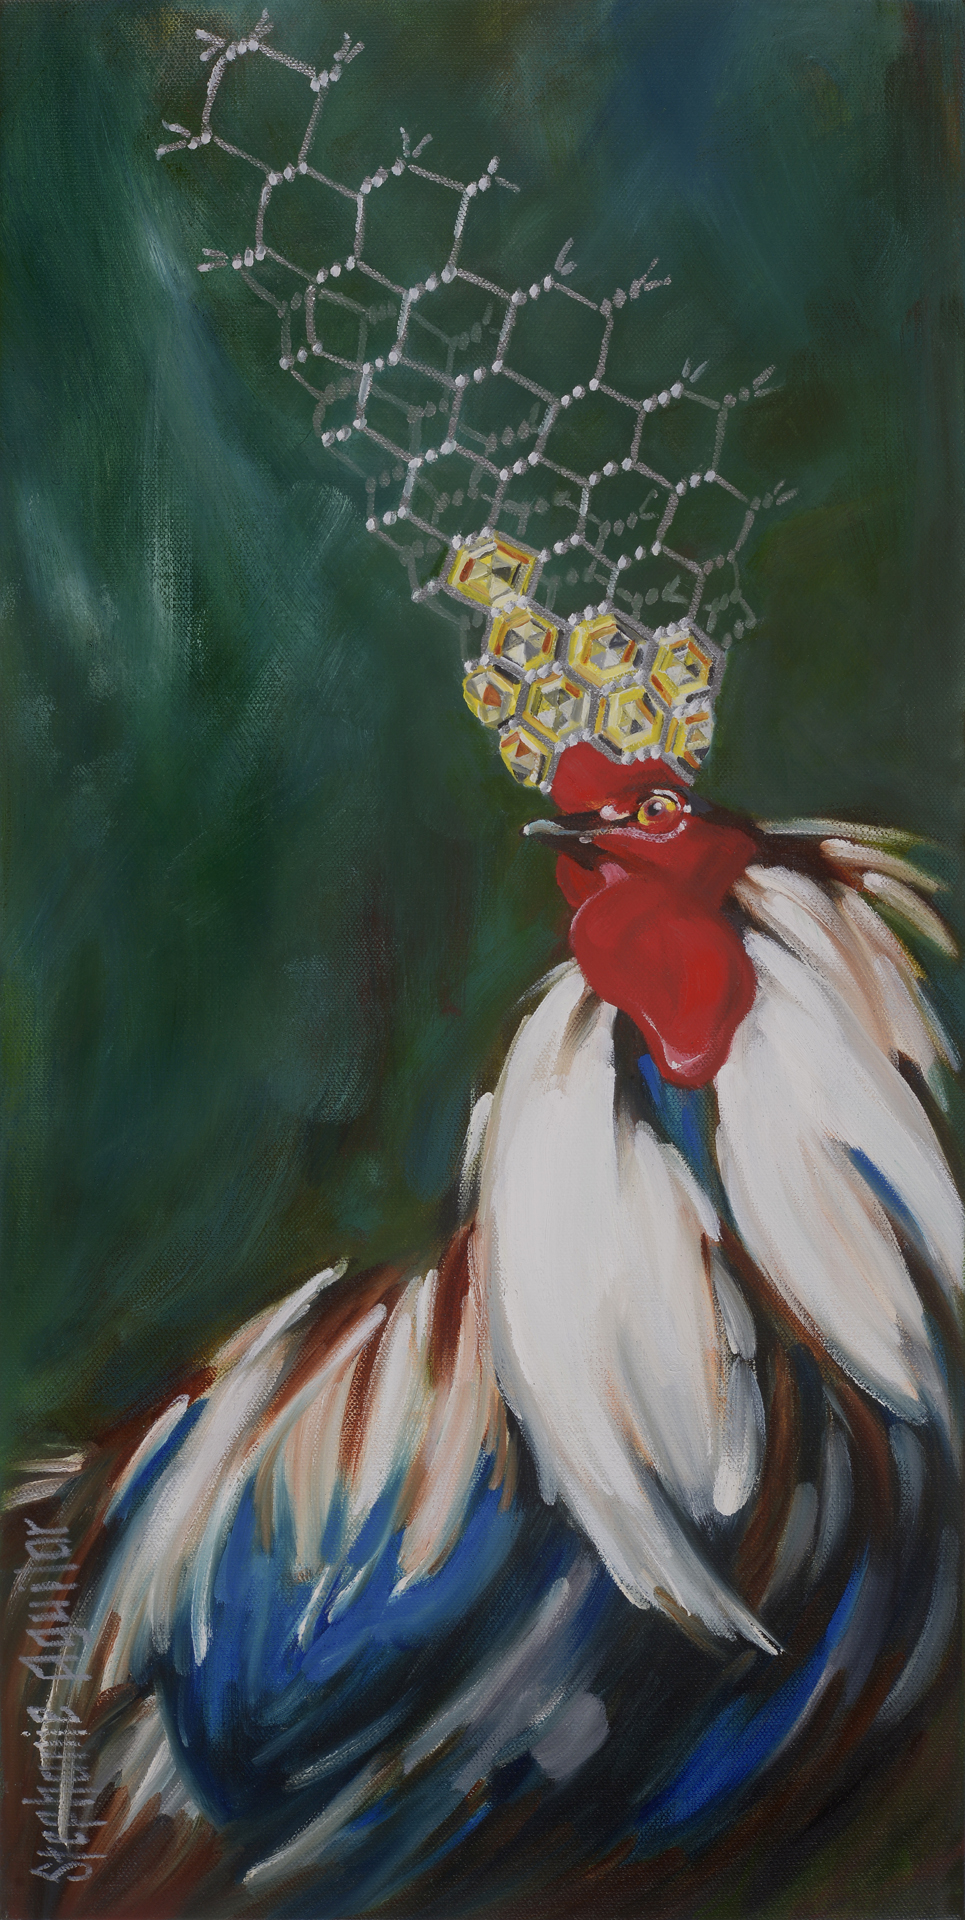 Chicken with wire crown, 2017